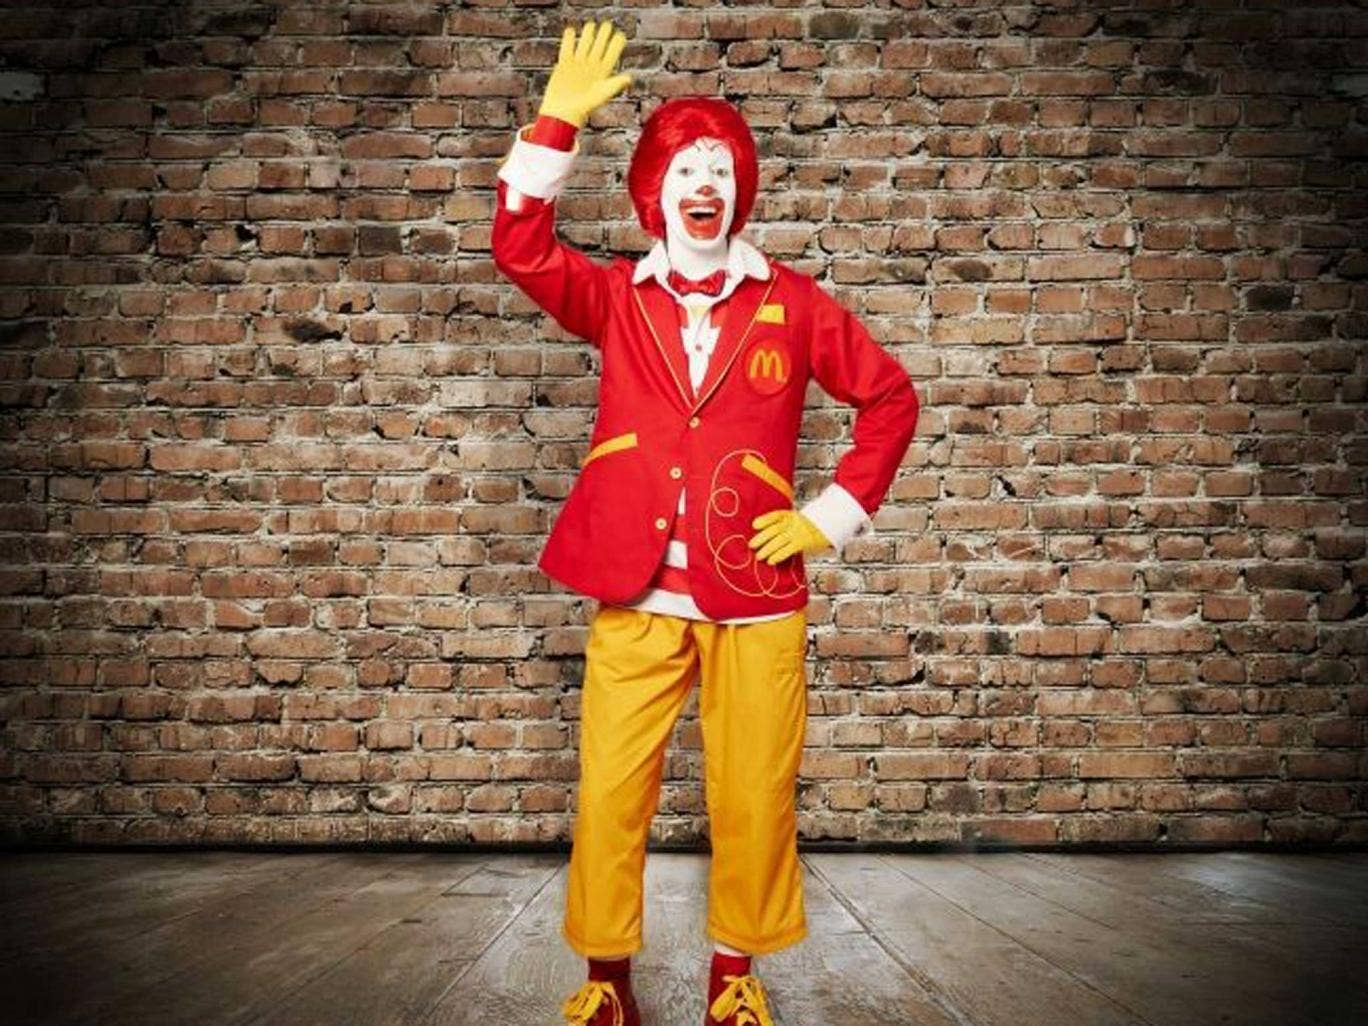 It's hoped Ronald McDonald's new image will eclipse the old